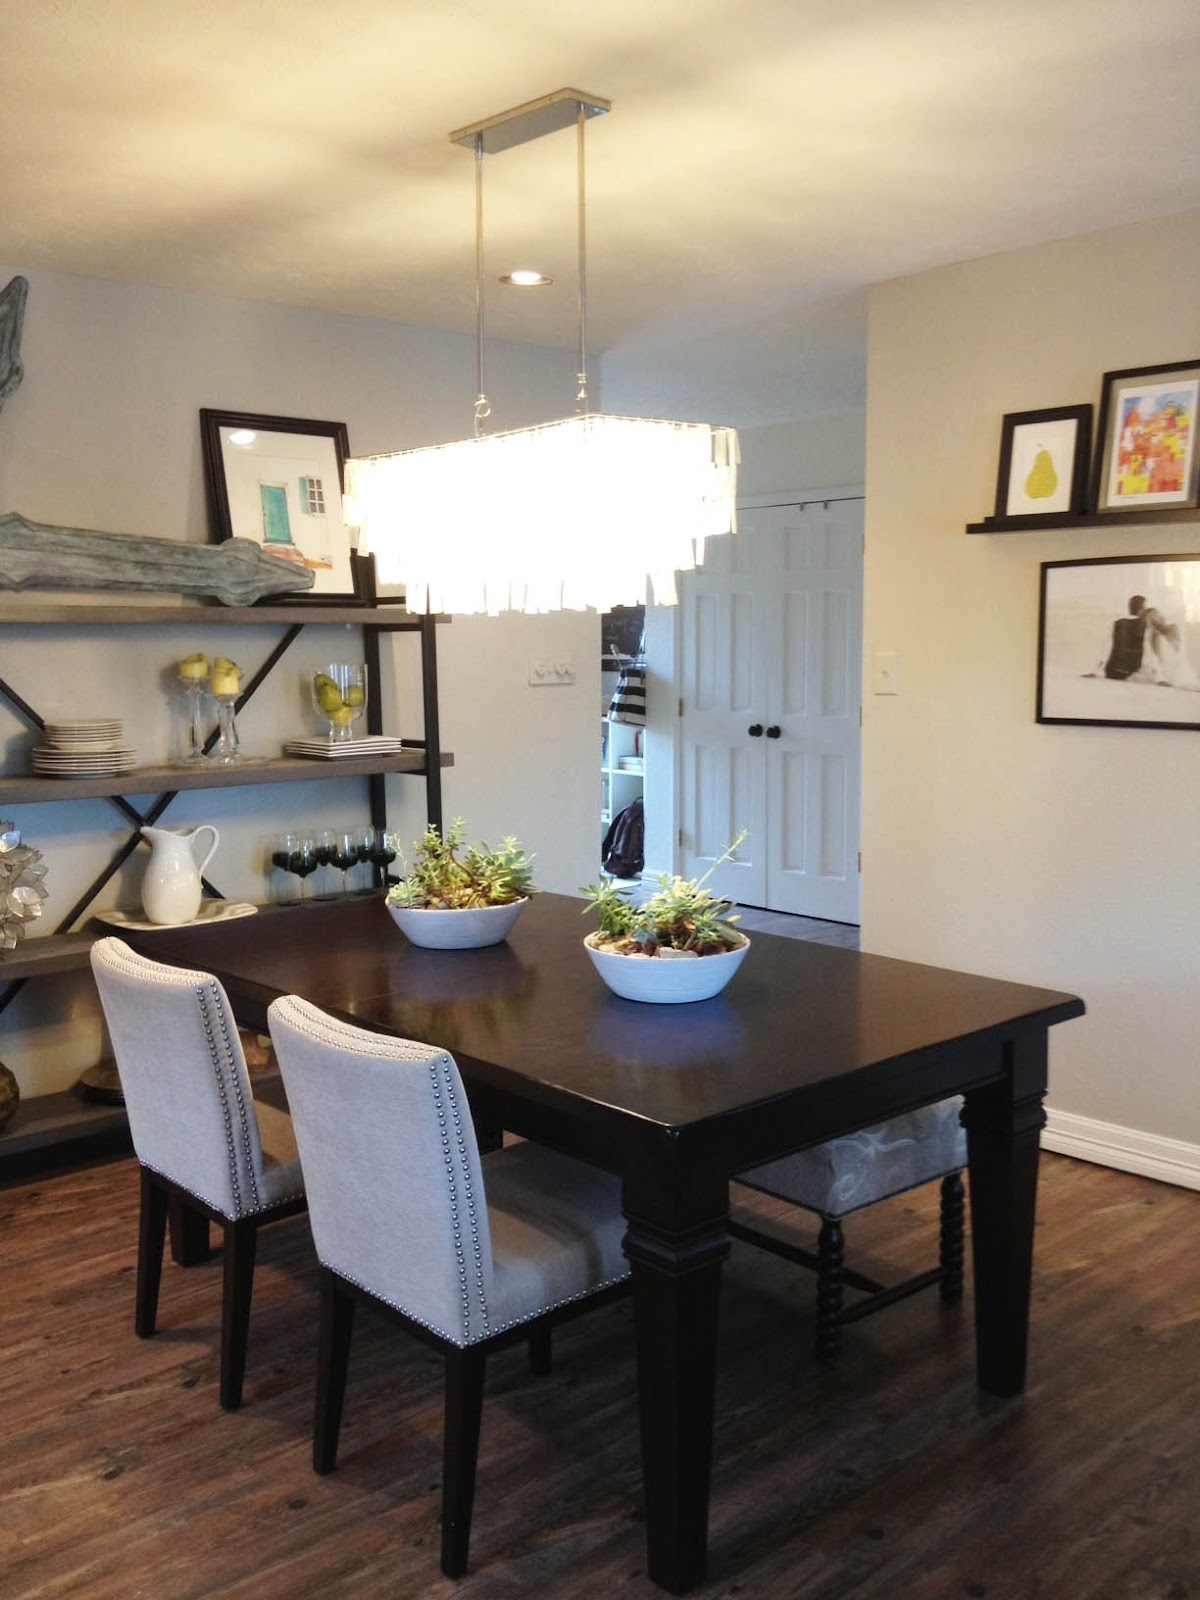 Contemporary Dining Room Light Magnificent Decor Inspiration For Preferred Living Room Table Lights (View 5 of 15)